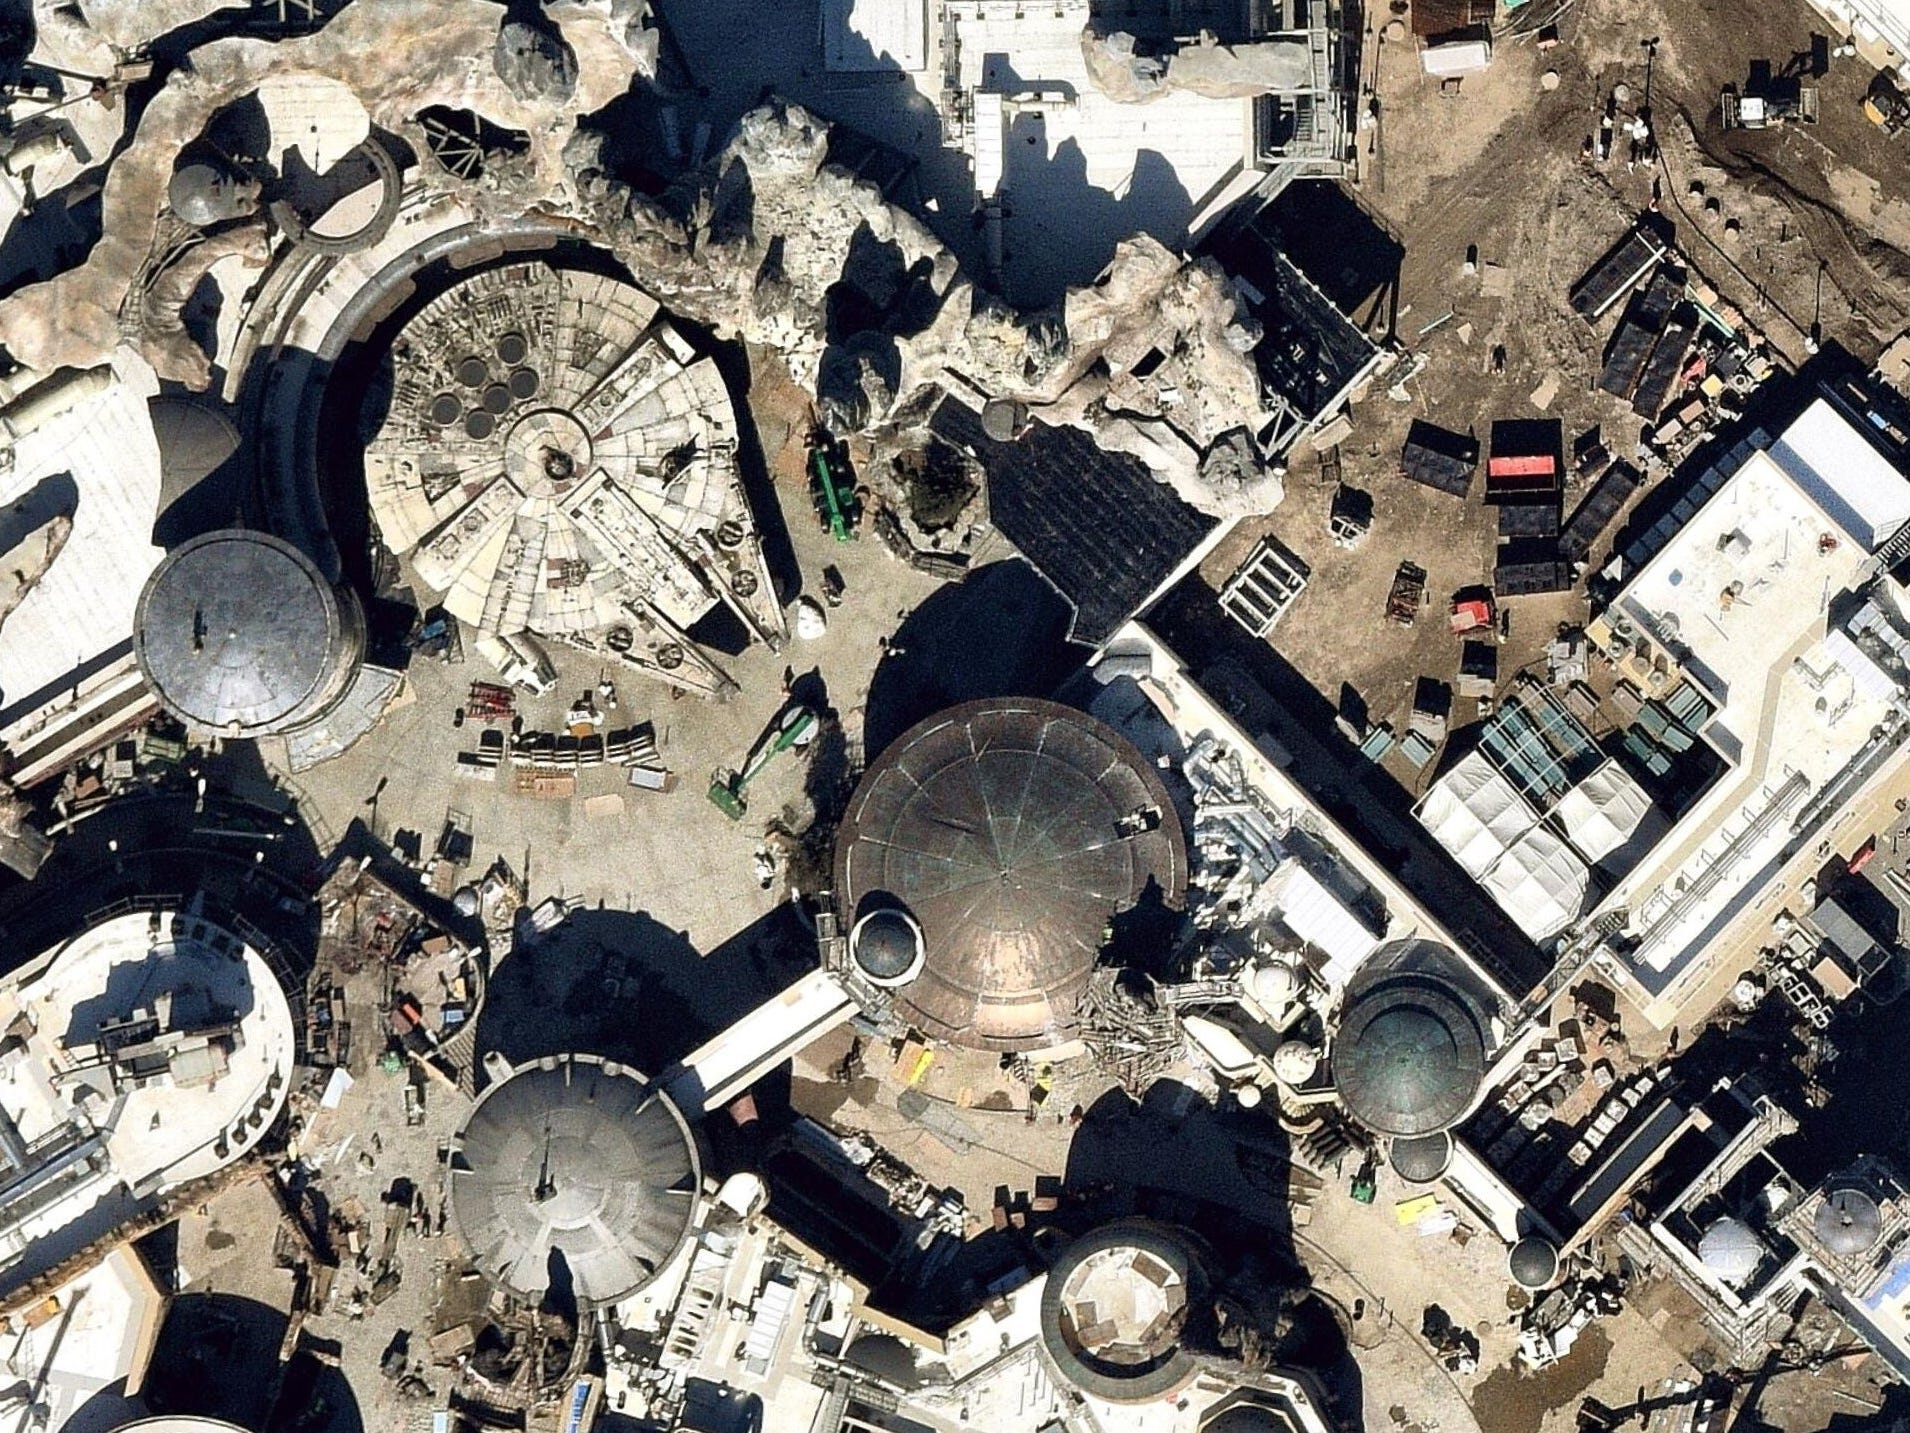 The Millennium Falcon, upper left, is parked among the marketplace of the Black Spire Outpost in Disneyland's Star Wars: Galaxy's Edge. The path leading down from the ship takes guests through shops and restaurants. The image from Nearmap was taken in February 2019.